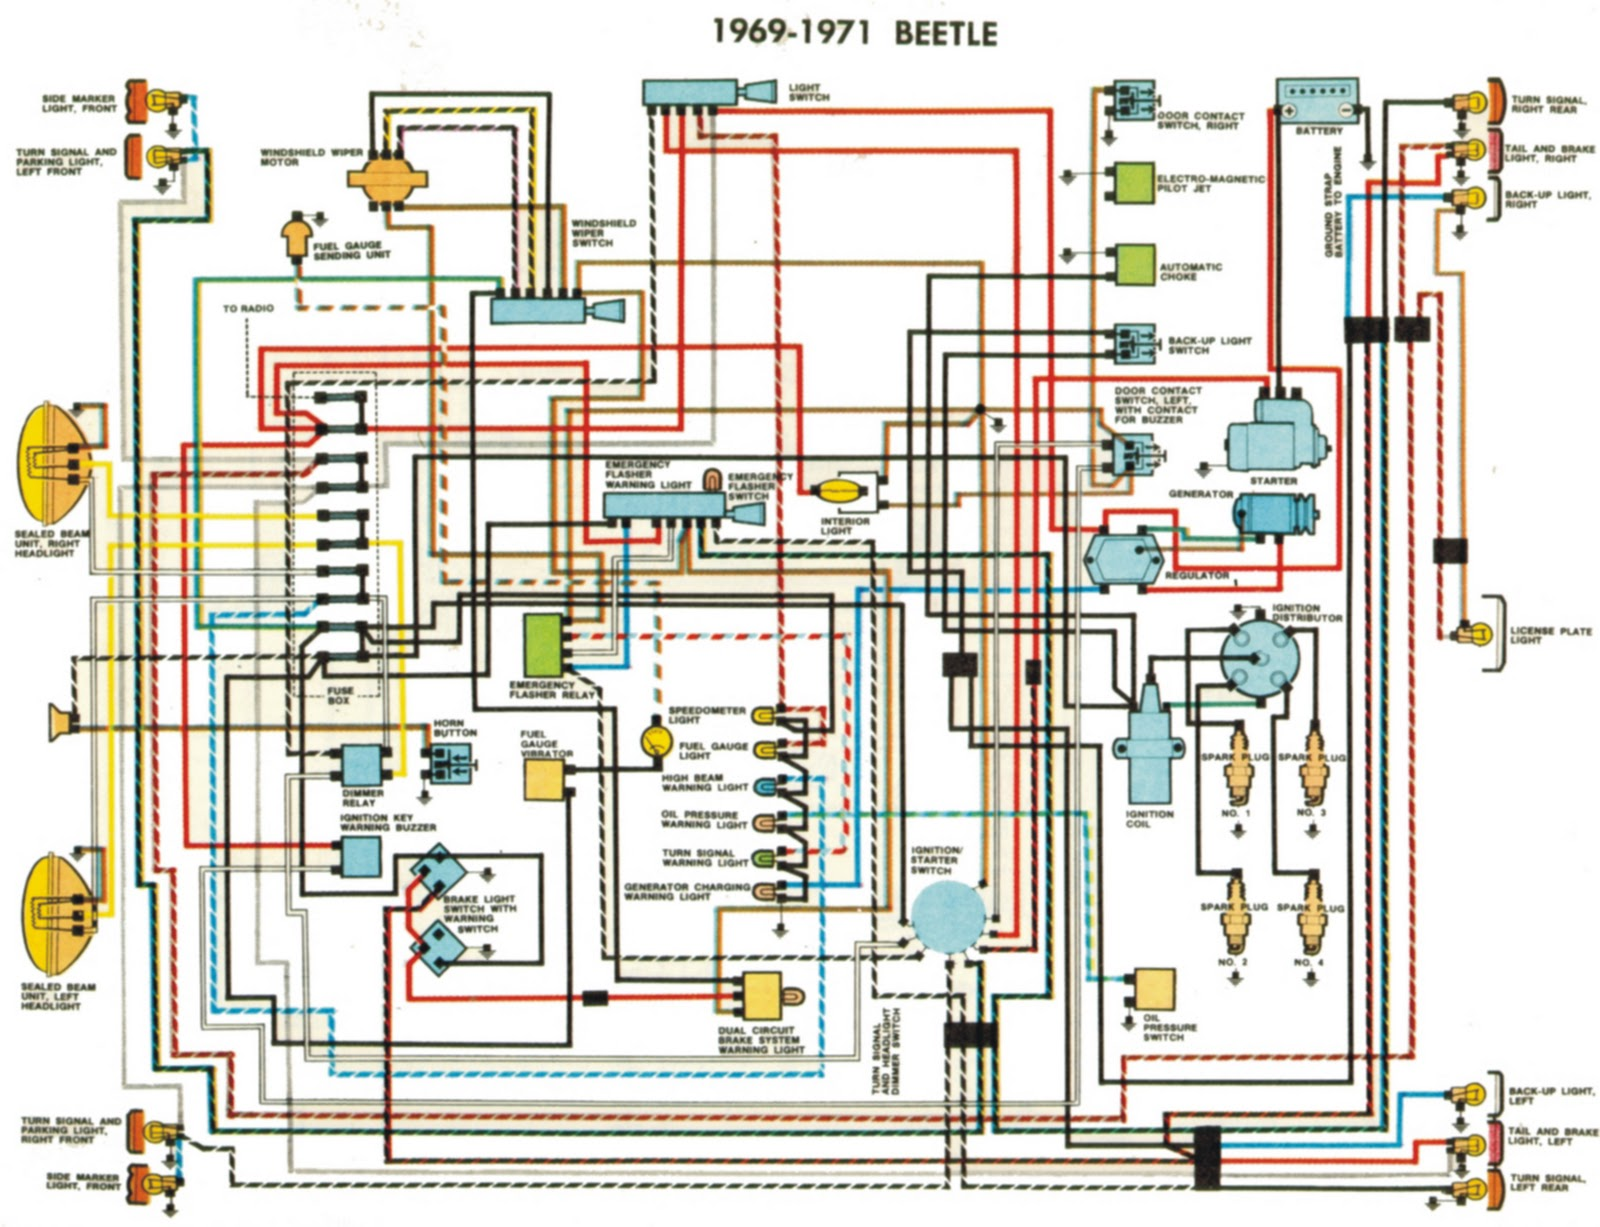 volkswagen beetle alternator wiring diagram 1969 volkswagen beetle ignition wiring diagram